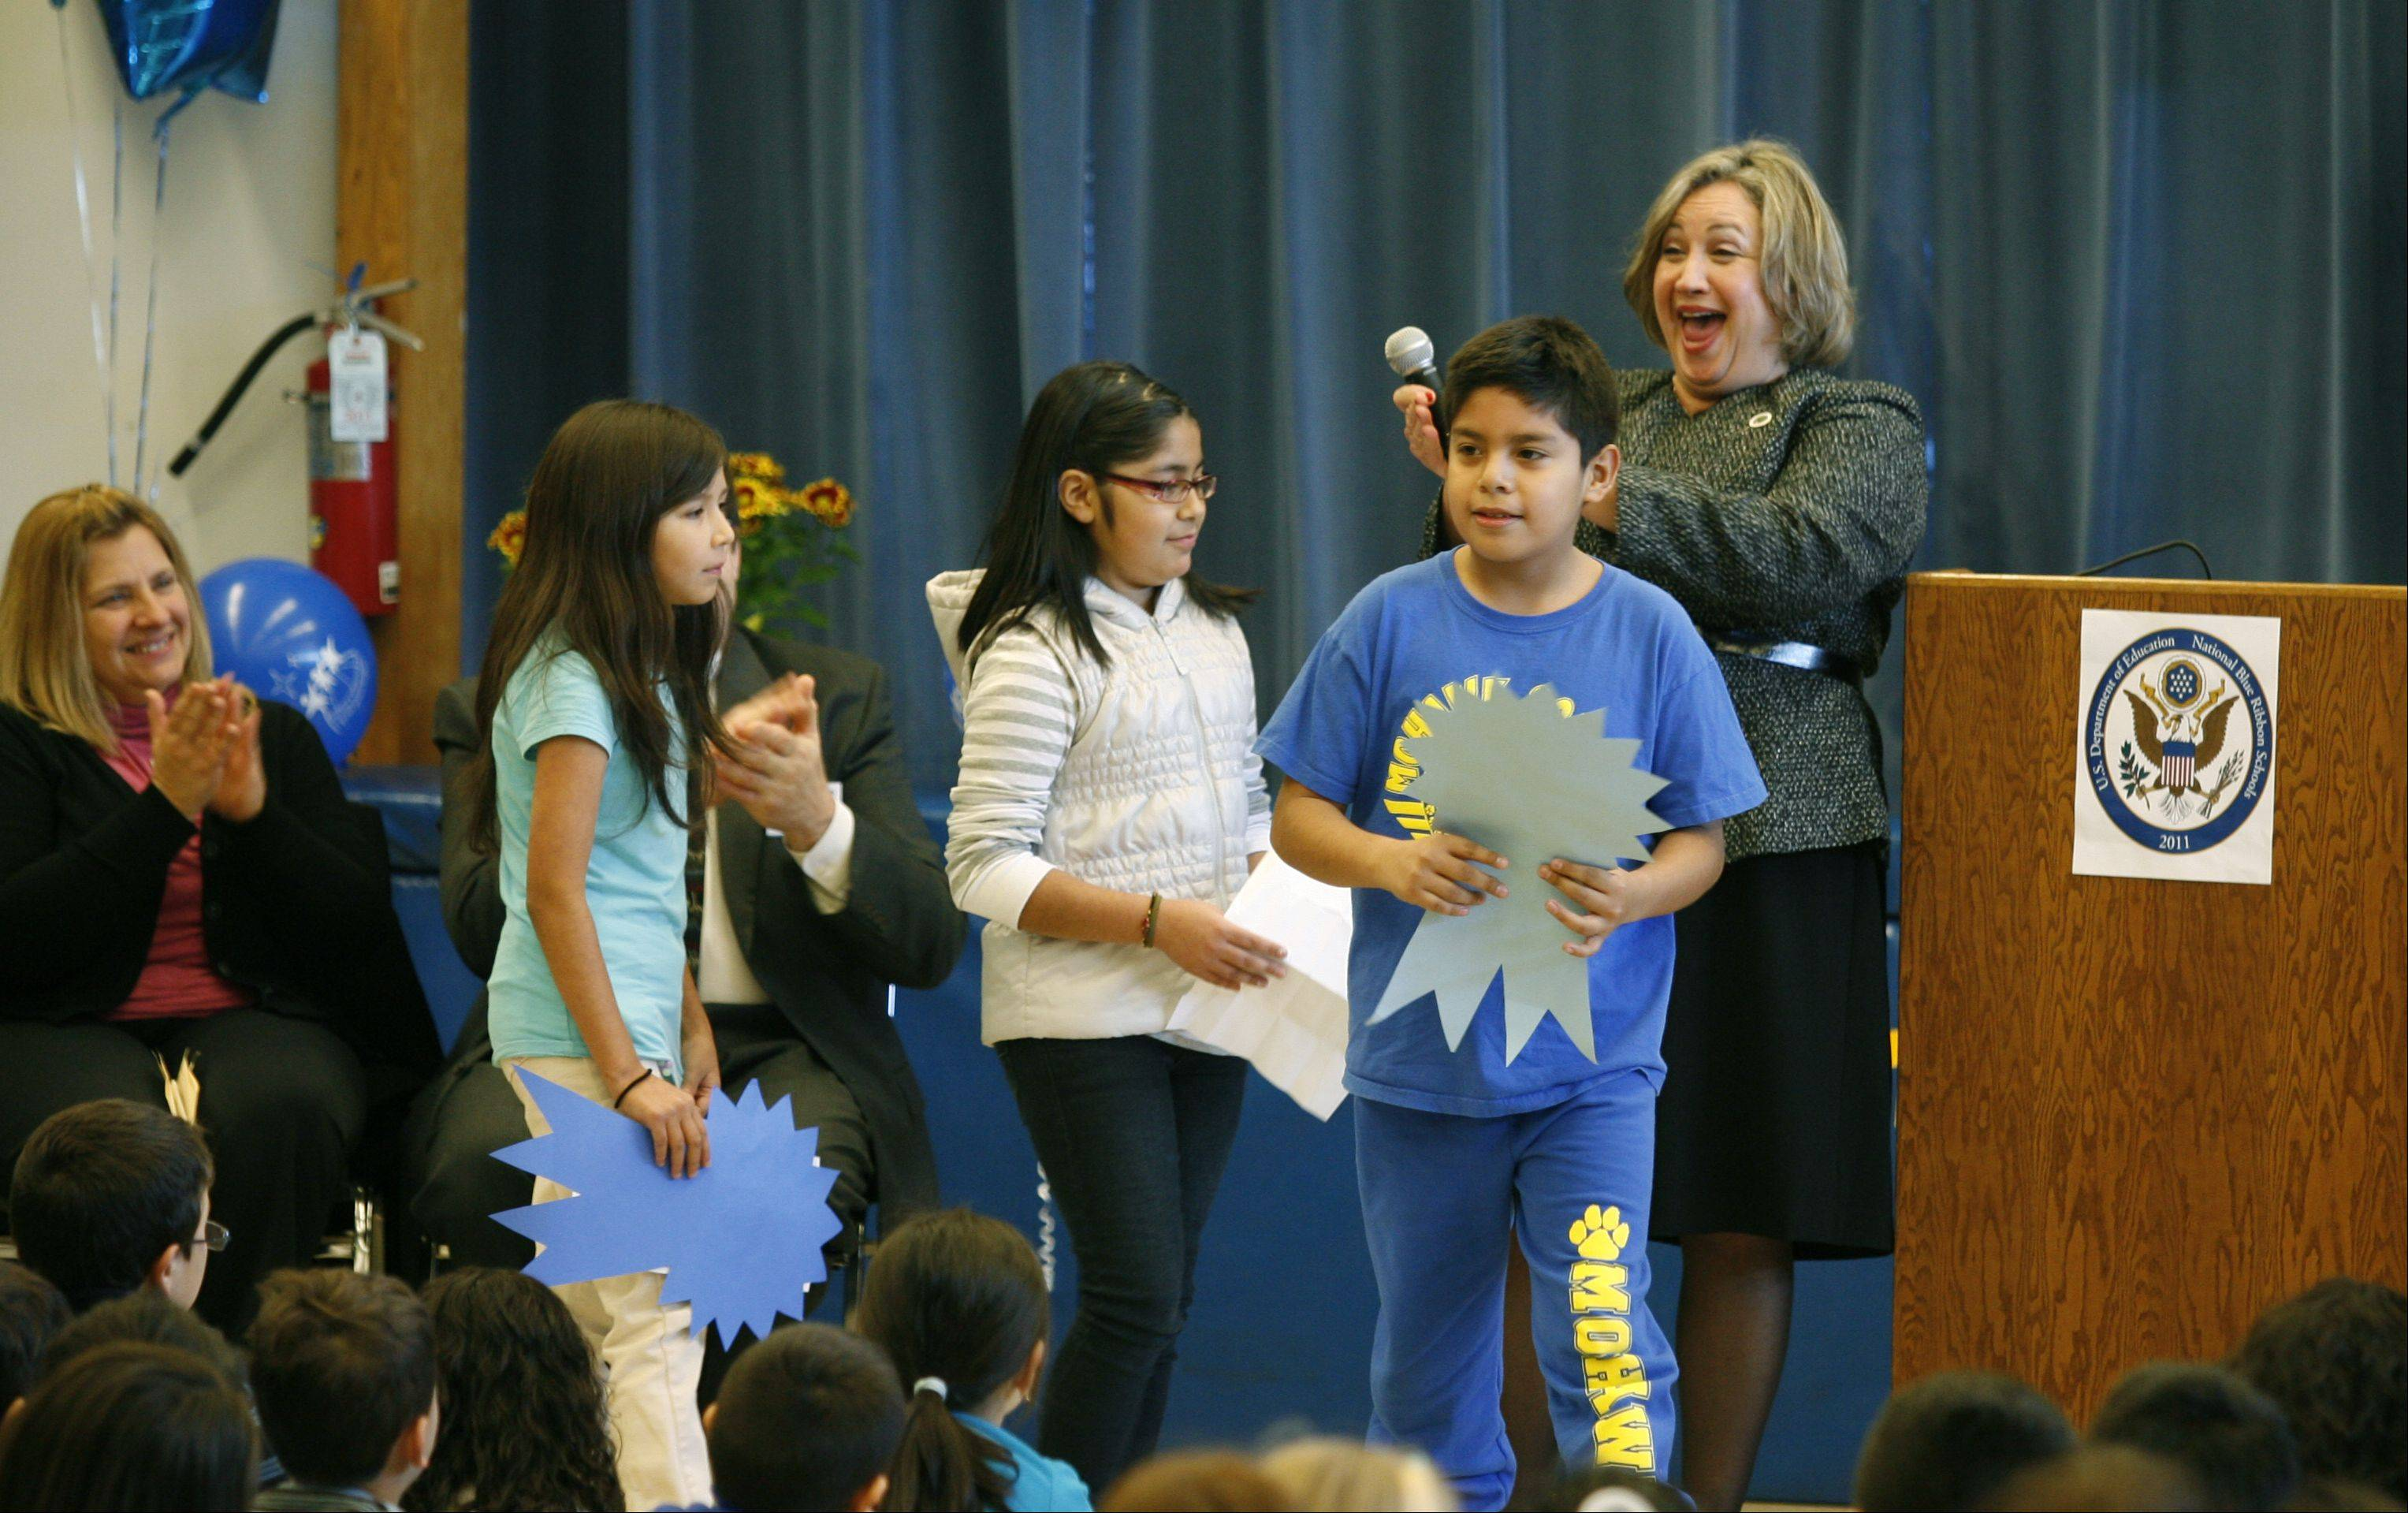 Mohawk School in Bensenville earned its second major honor of the academic year this week when it won the Spotlight School Award. In November, Principal Madelyn Devers celebrated with her students after the school won a National Blue Ribbon School award from the U.S. Department of Education.